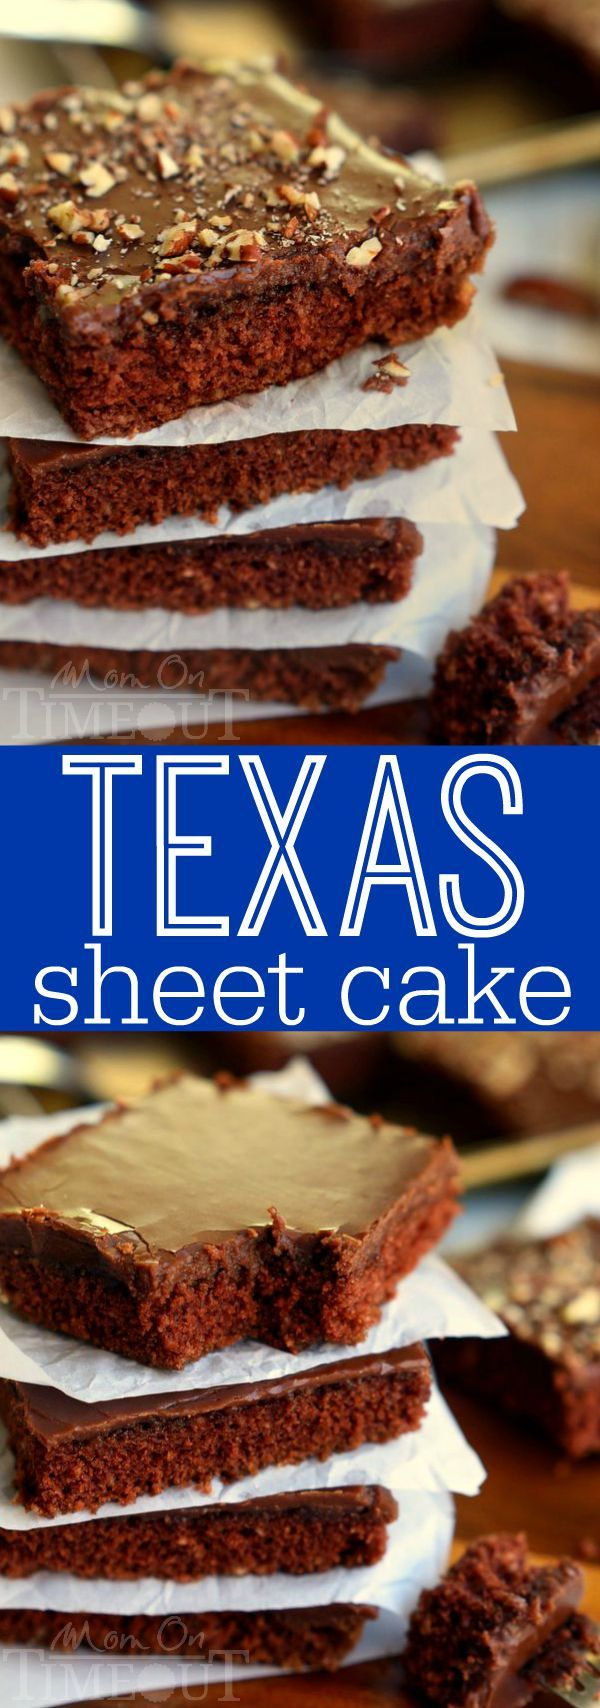 Texas Sheet Cake - My go-to cake recipe to feed a crowd! Easy as can be, this cake boasts intense chocolate flavor and richness and can be made with or without nuts - dig in!